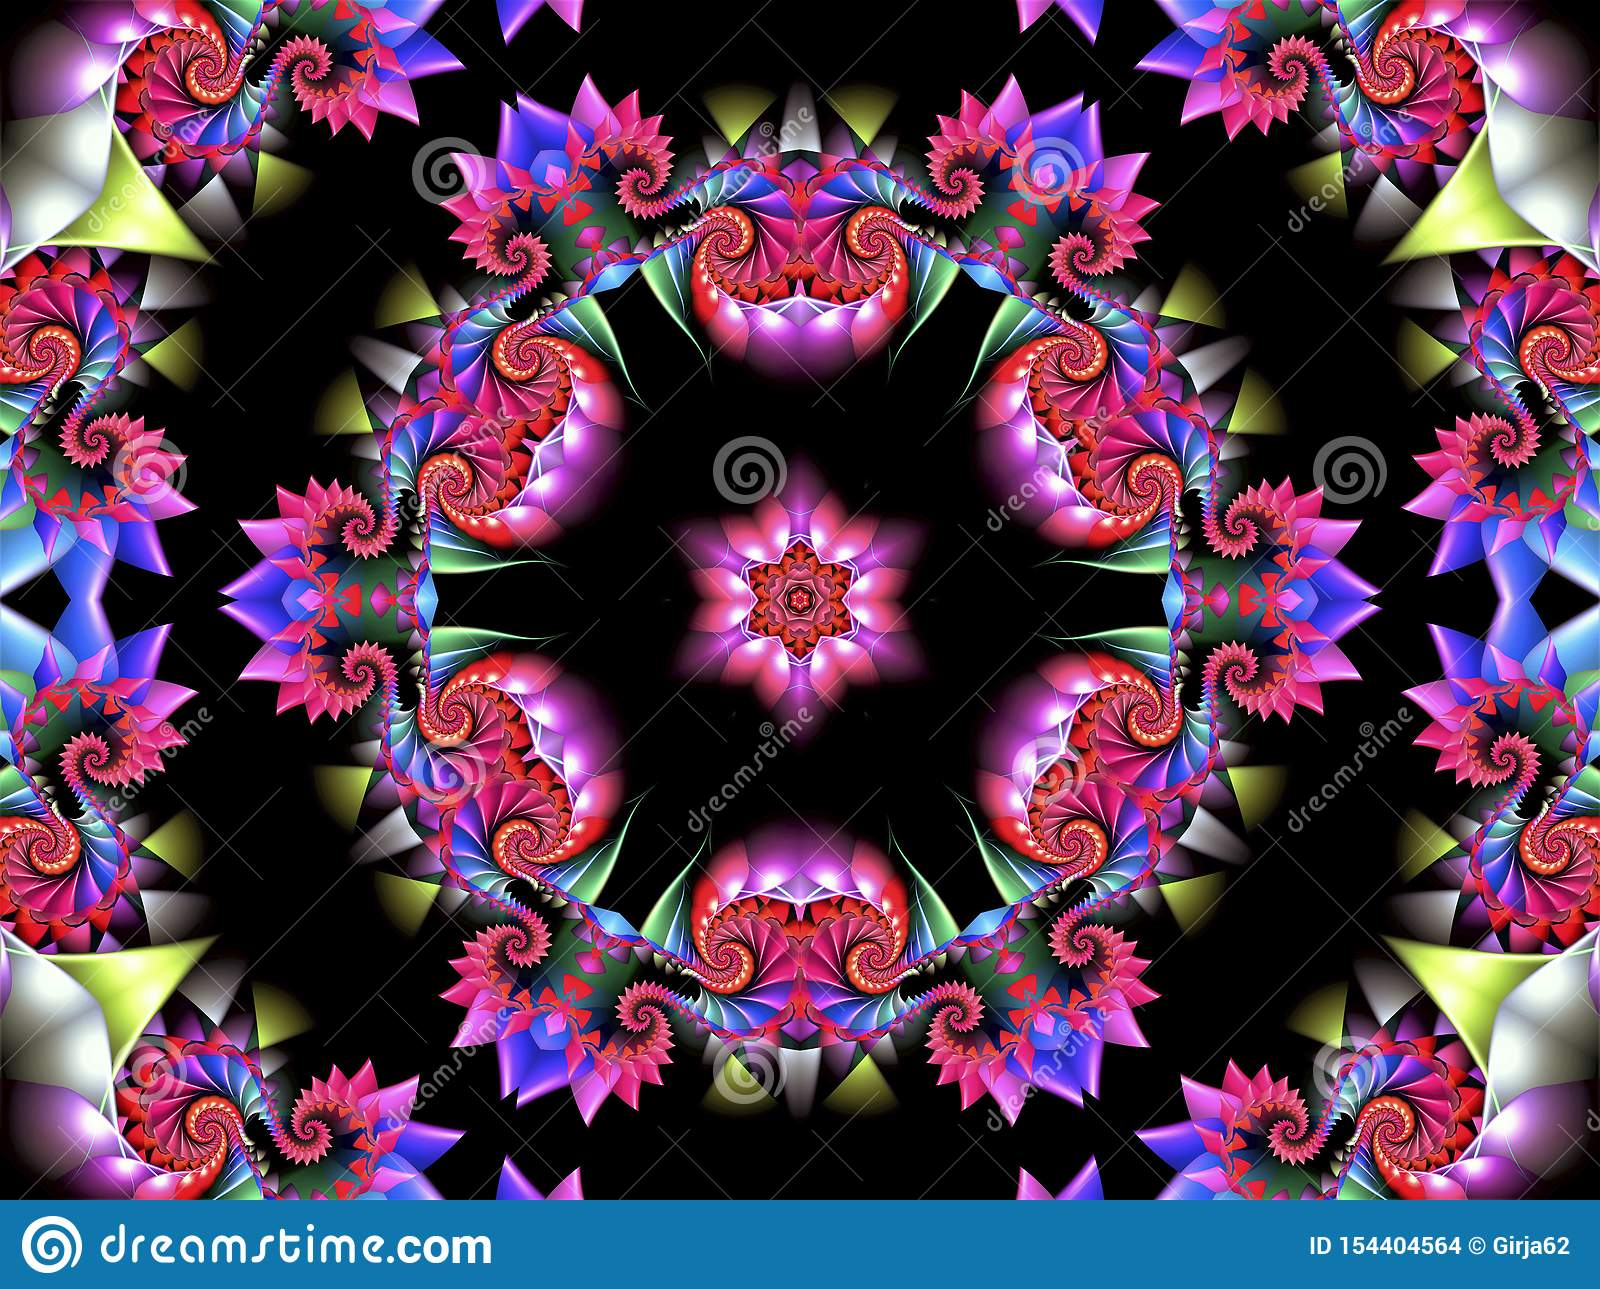 Colorful abstract background with a multi-colored circular ornament with various shapes and a beautiful abstract star in the cente